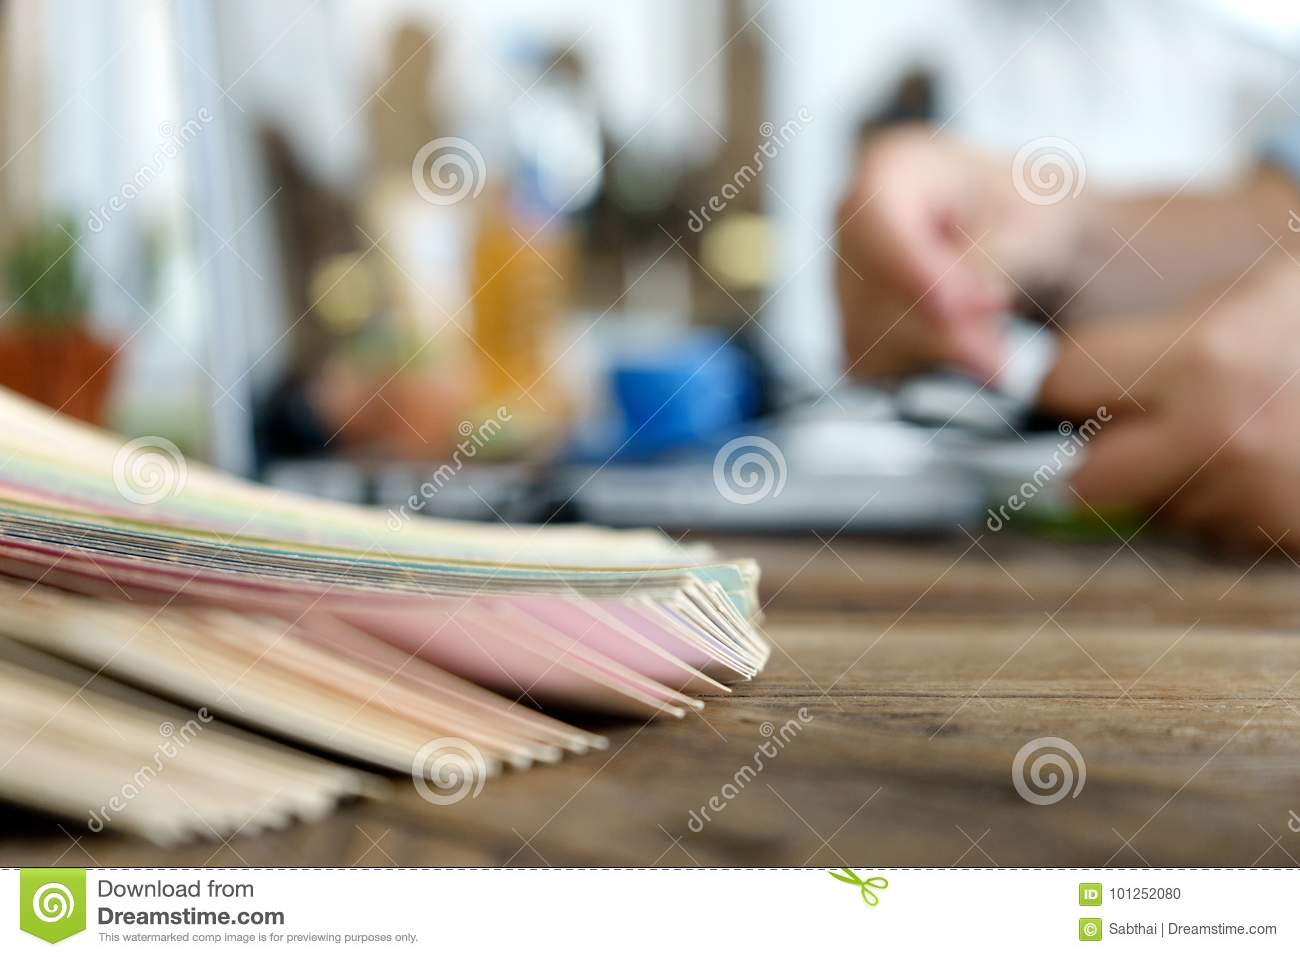 blur graphic designer working with computer and color tone paper